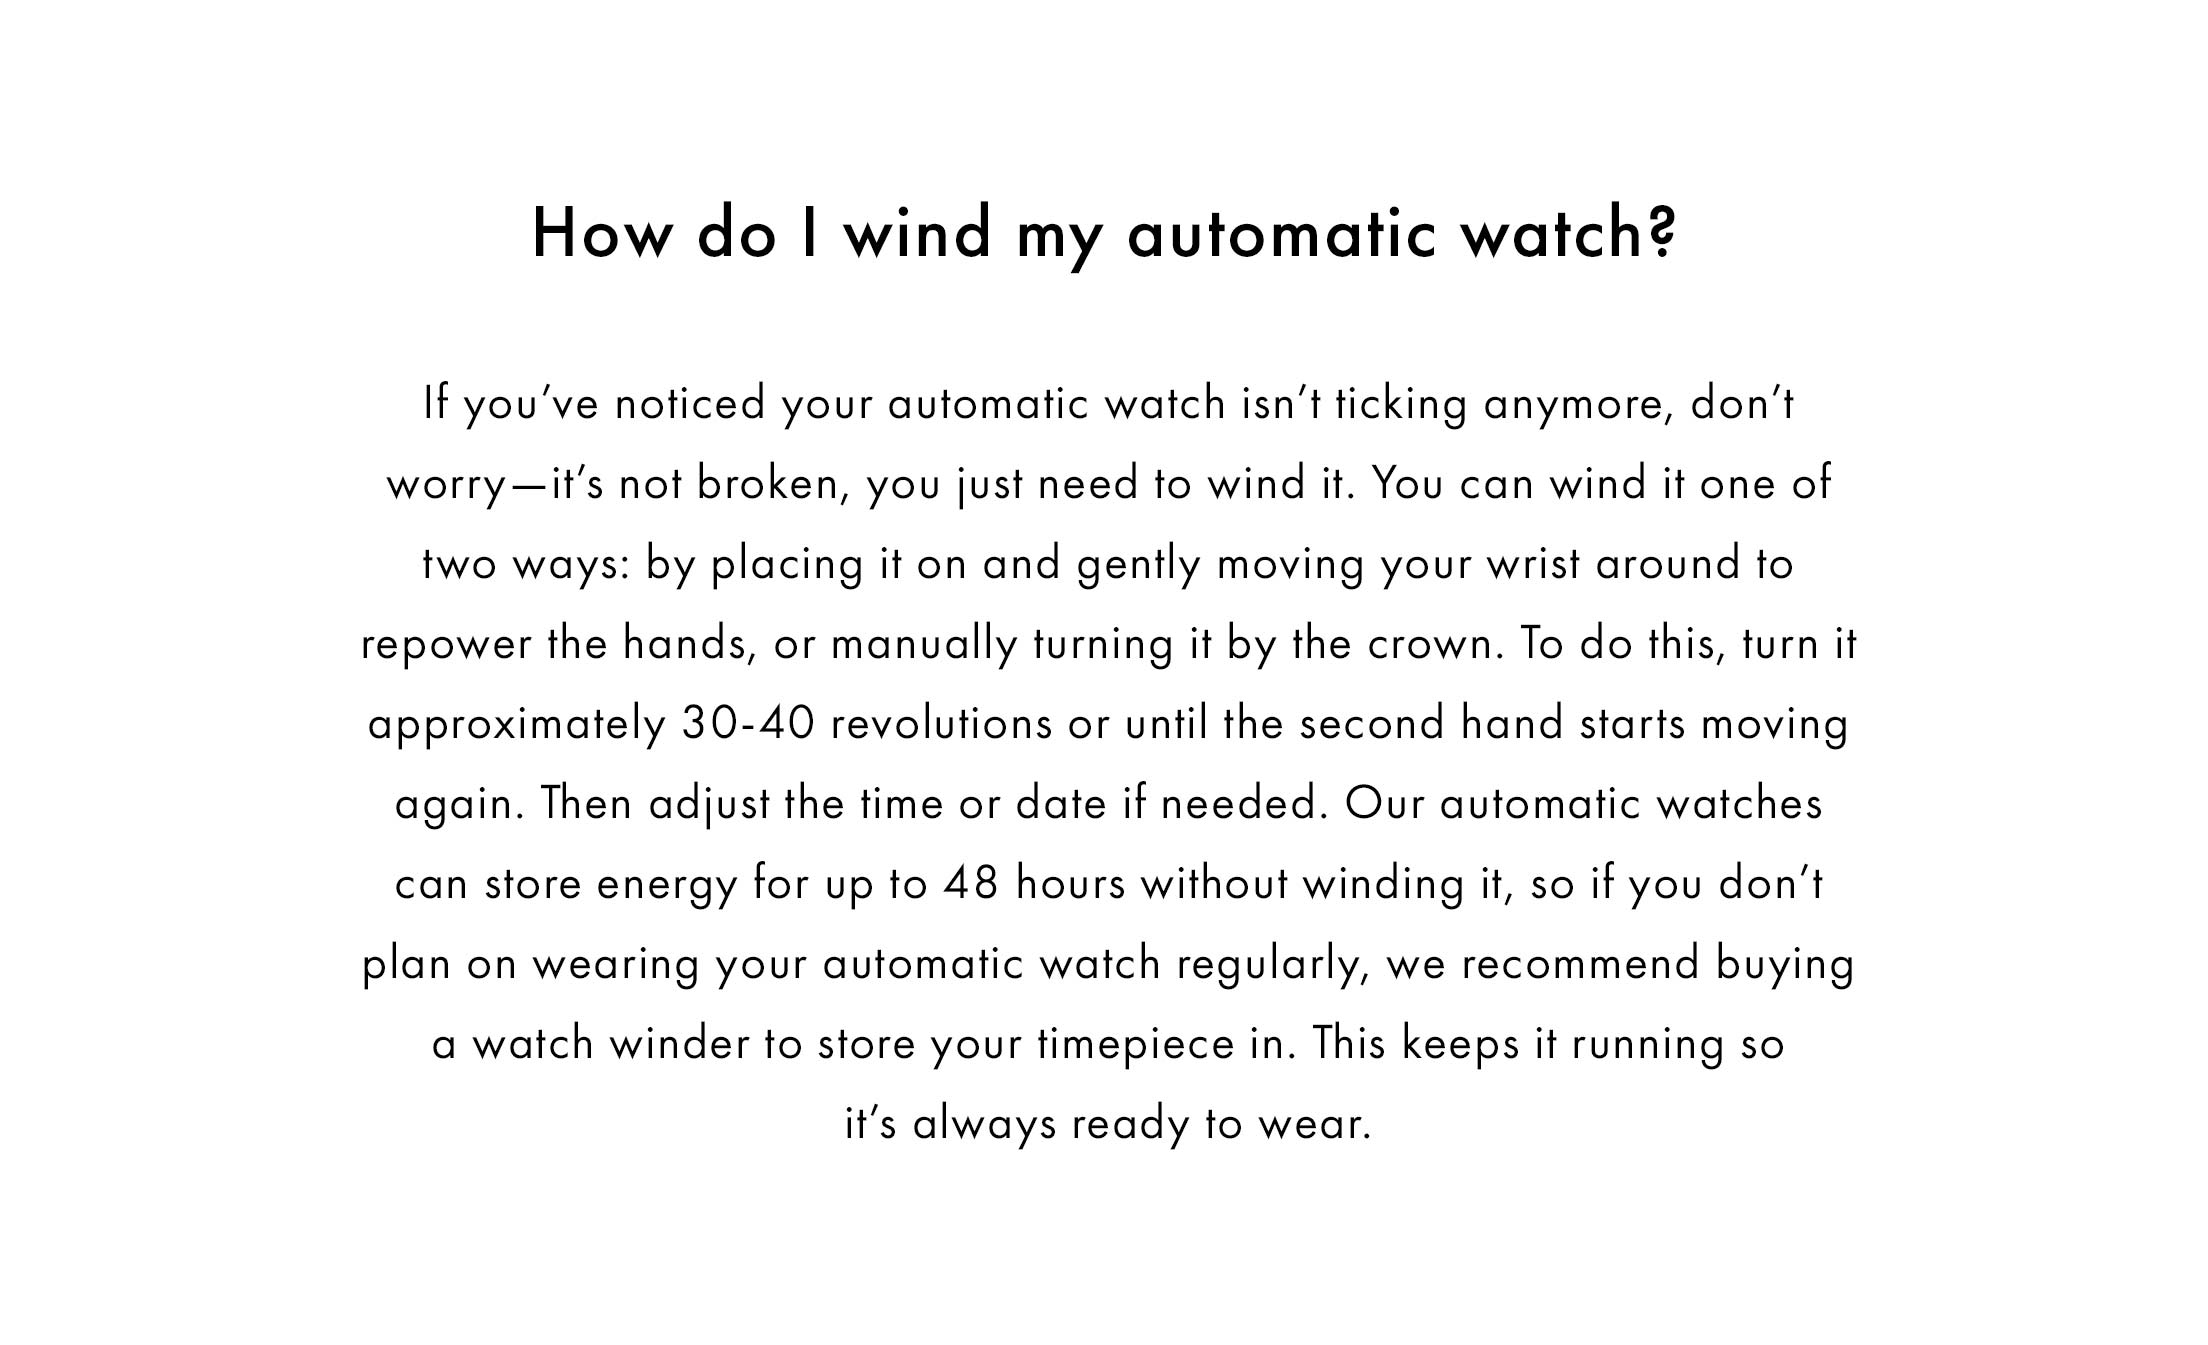 How do I wind my automatic watch?  If you've noticed your automatic watch isn't ticking anymore, don't worry—it's not broken, you just need to wind it. You can wind it one of two ways: by placing it on and gently moving your wrist around to repower the hands, or manually turning it by the crown. To do this, turn it approximately 30-40 revolutions or until the second hand starts moving again. Then adjust the time or date if needed. Our automatic watches can store energy for up to 48 hours without winding it, so if you don't plan on wearing your automatic watch regularly, we recommend buying a watch winder to store your timepiece in. This keeps it running so it's always ready to wear.